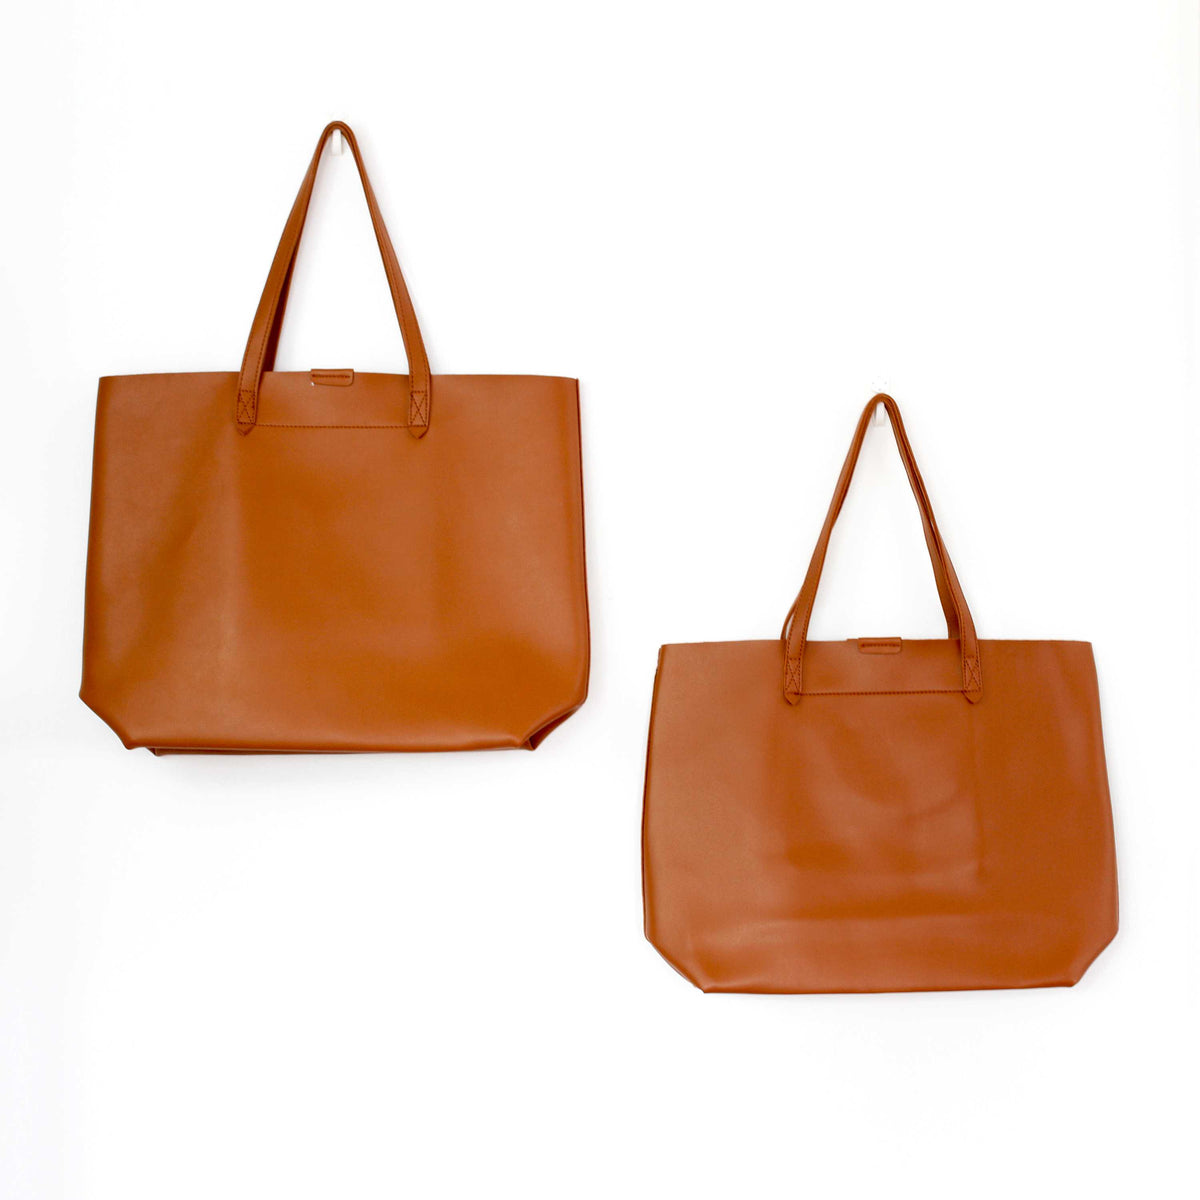 Oversized Tote Bag - Burnt Orange - worthtryit.com